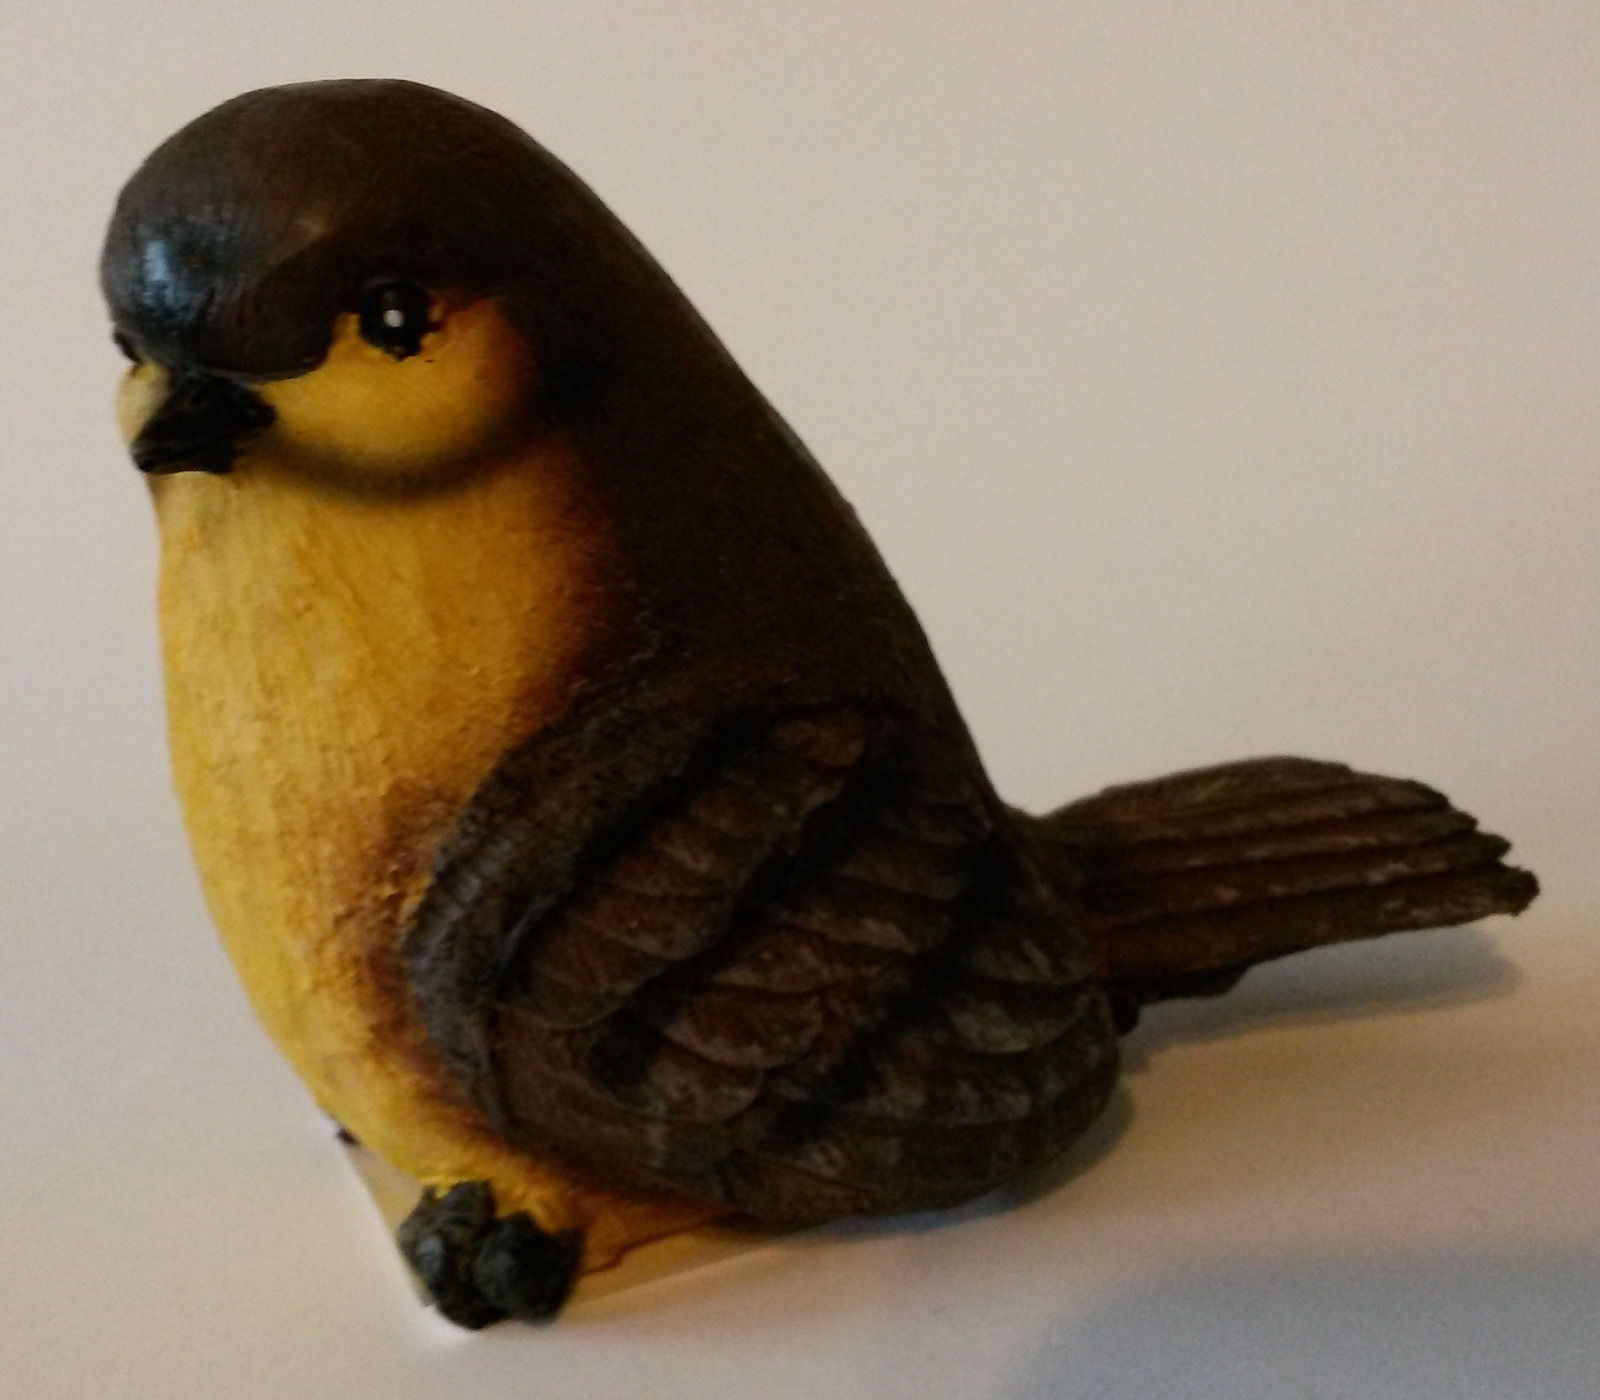 "NEW Pair of Fat Bird Figurines, Resin, 3"" tall, Indoors / Outdoors Statue yellow"